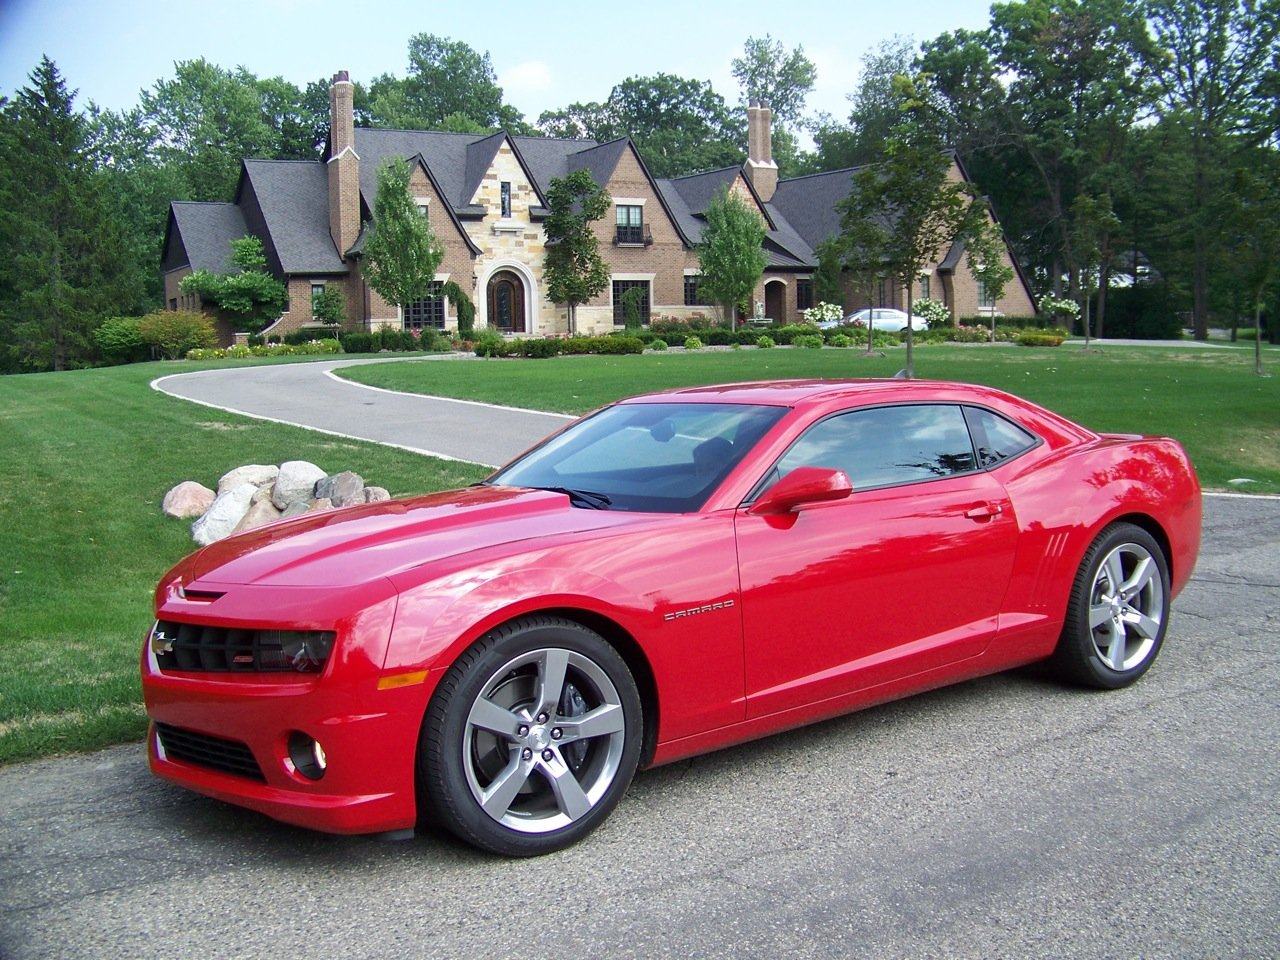 Chevrolet camaro chevrolet 2010 : Review: 2010 Chevrolet Camaro SS - The Truth About Cars